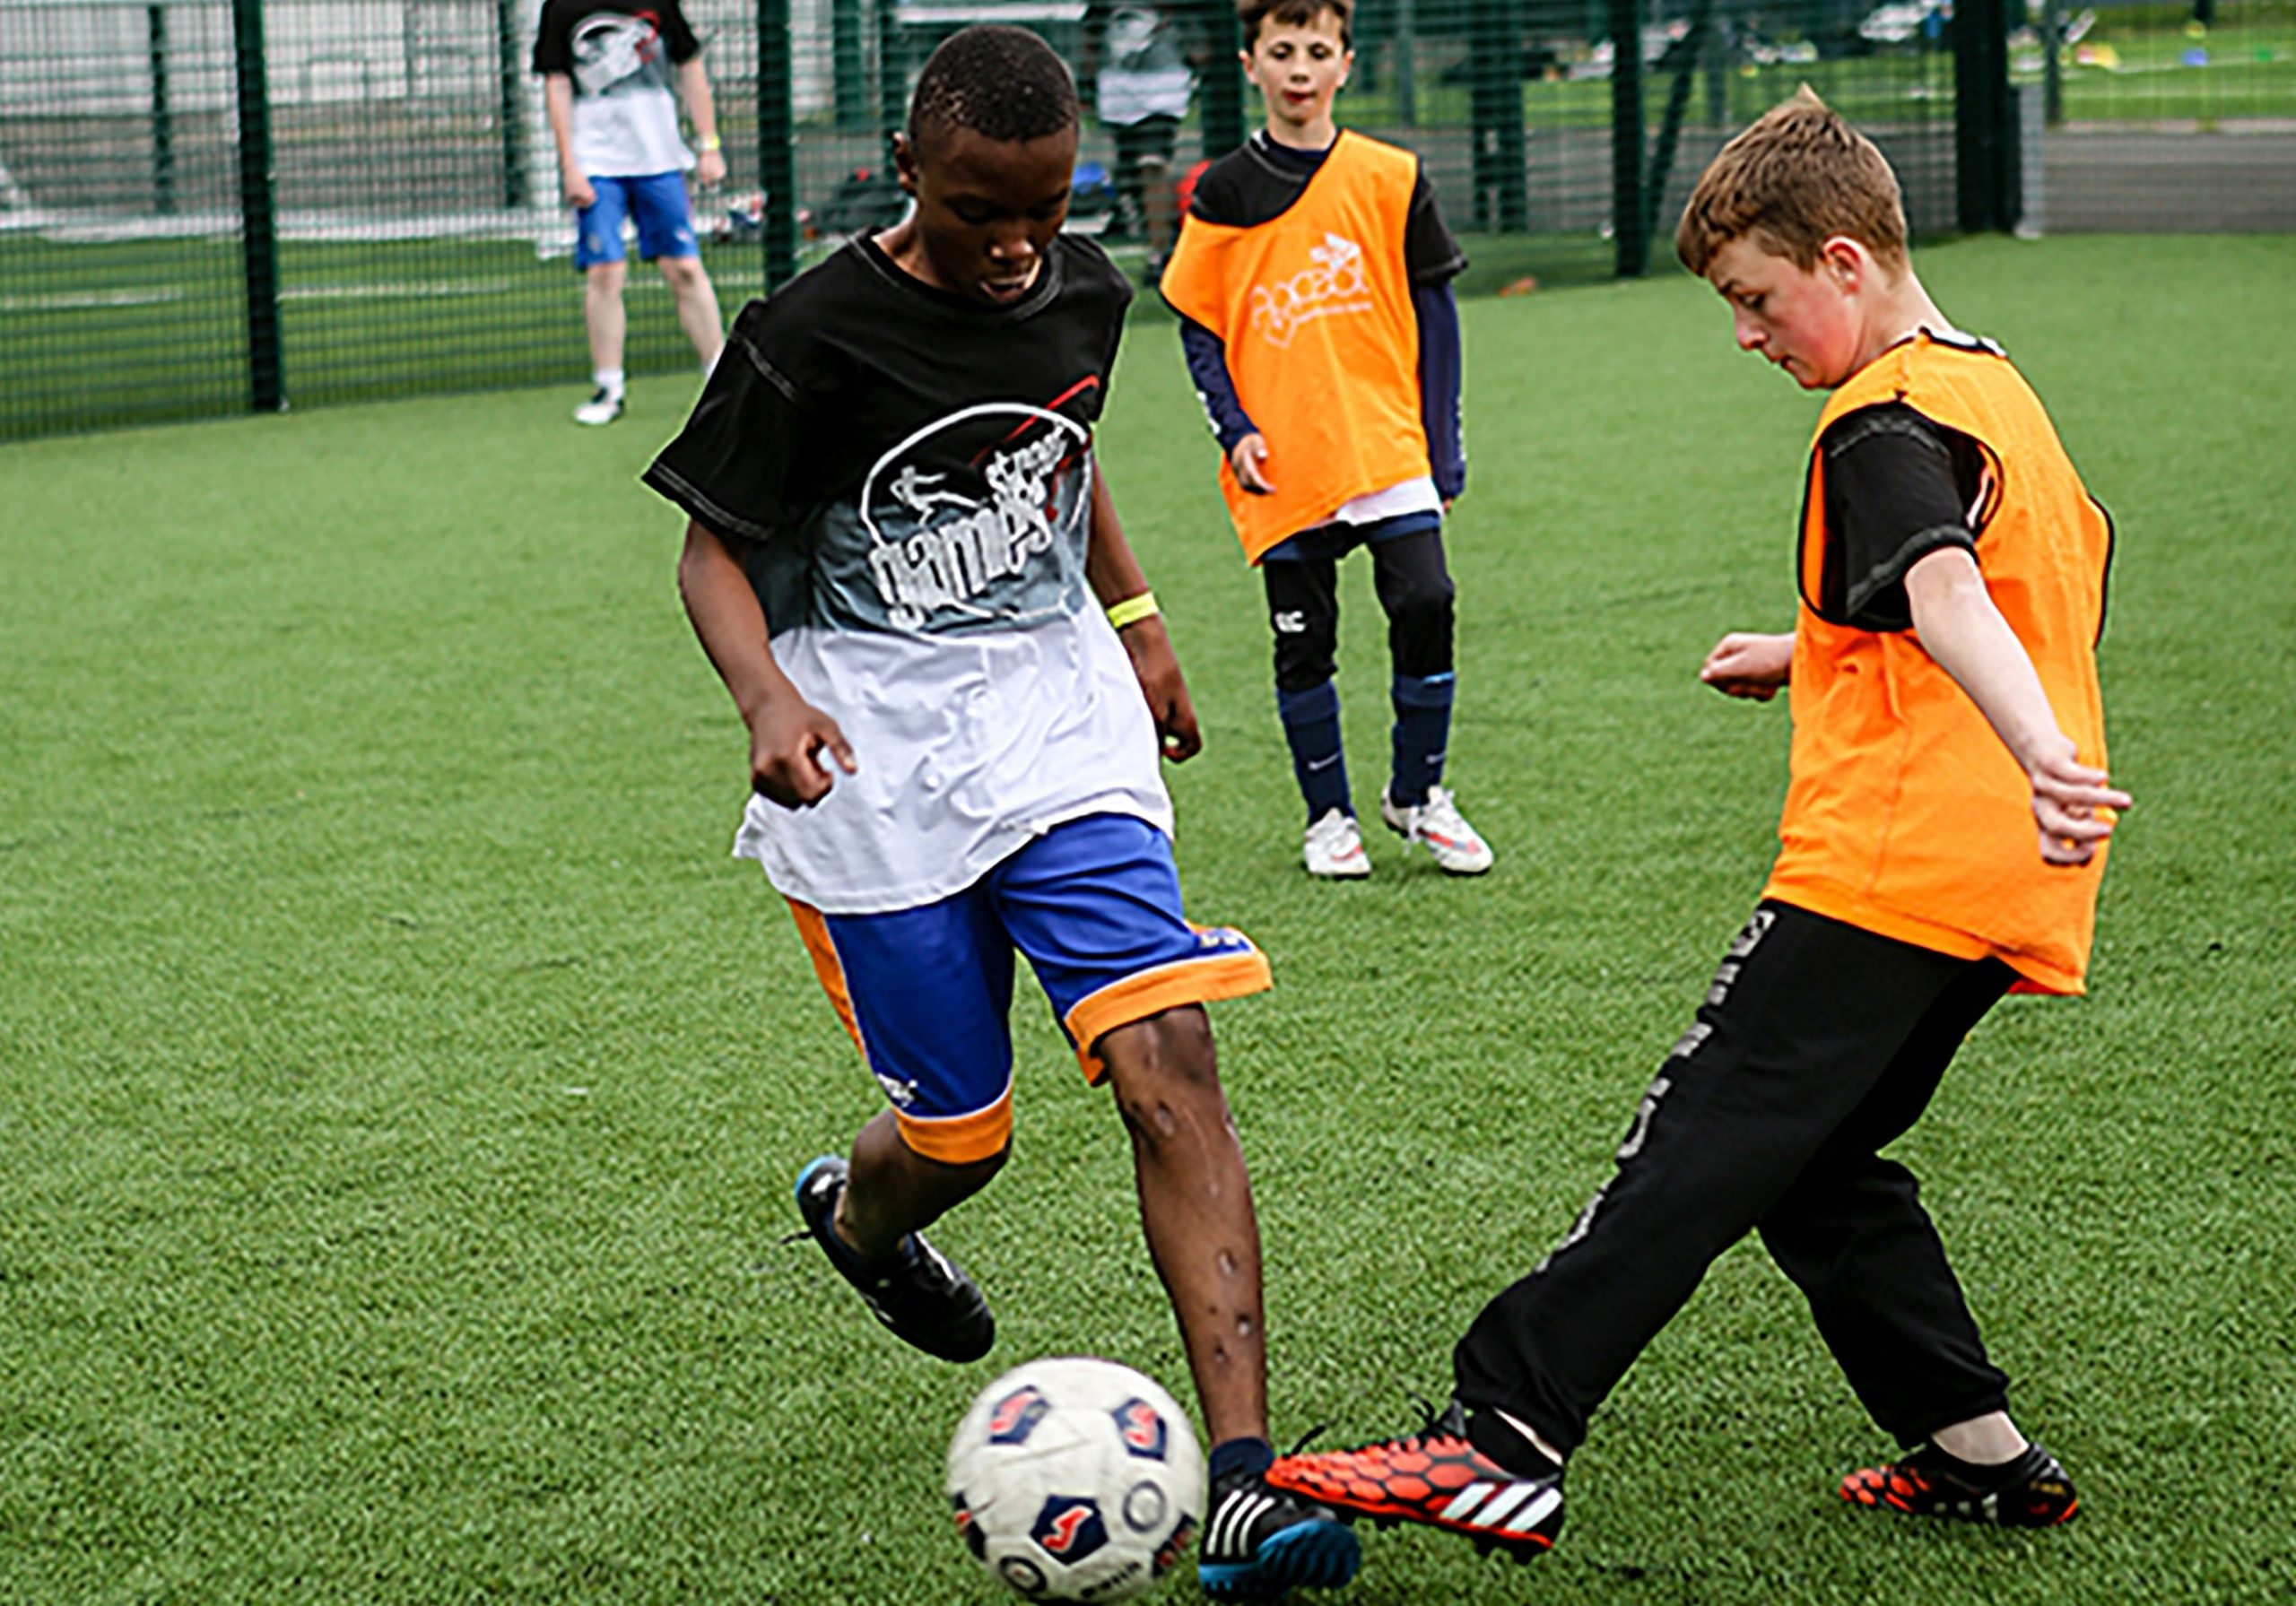 YGAM Adds Training Initiative With StreetGames And Yorkshire Sport